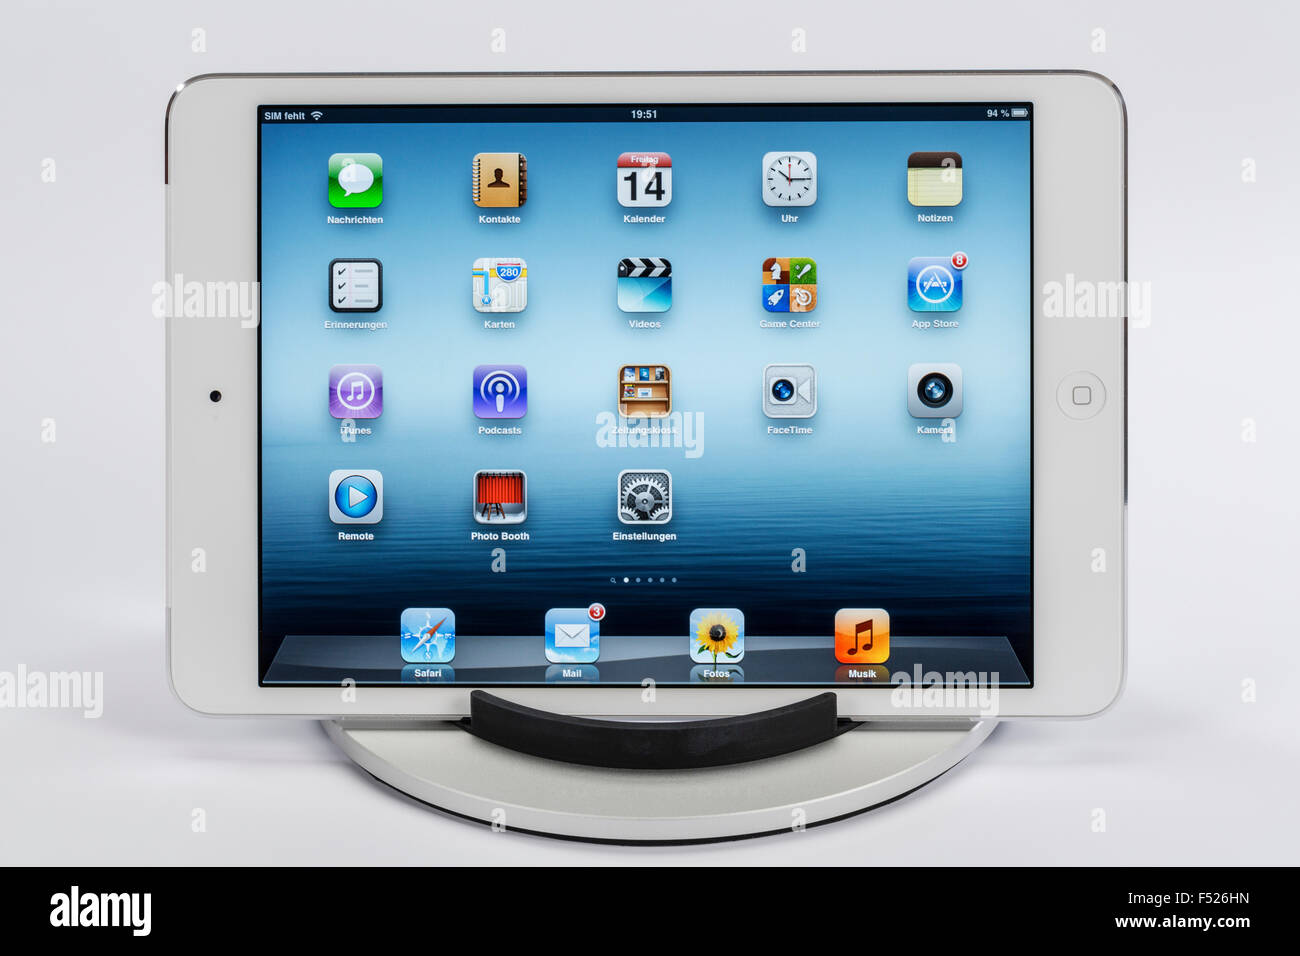 Apple iPad mini, display, apps, programmes, multi-touch function, iPad stand, - Stock Image